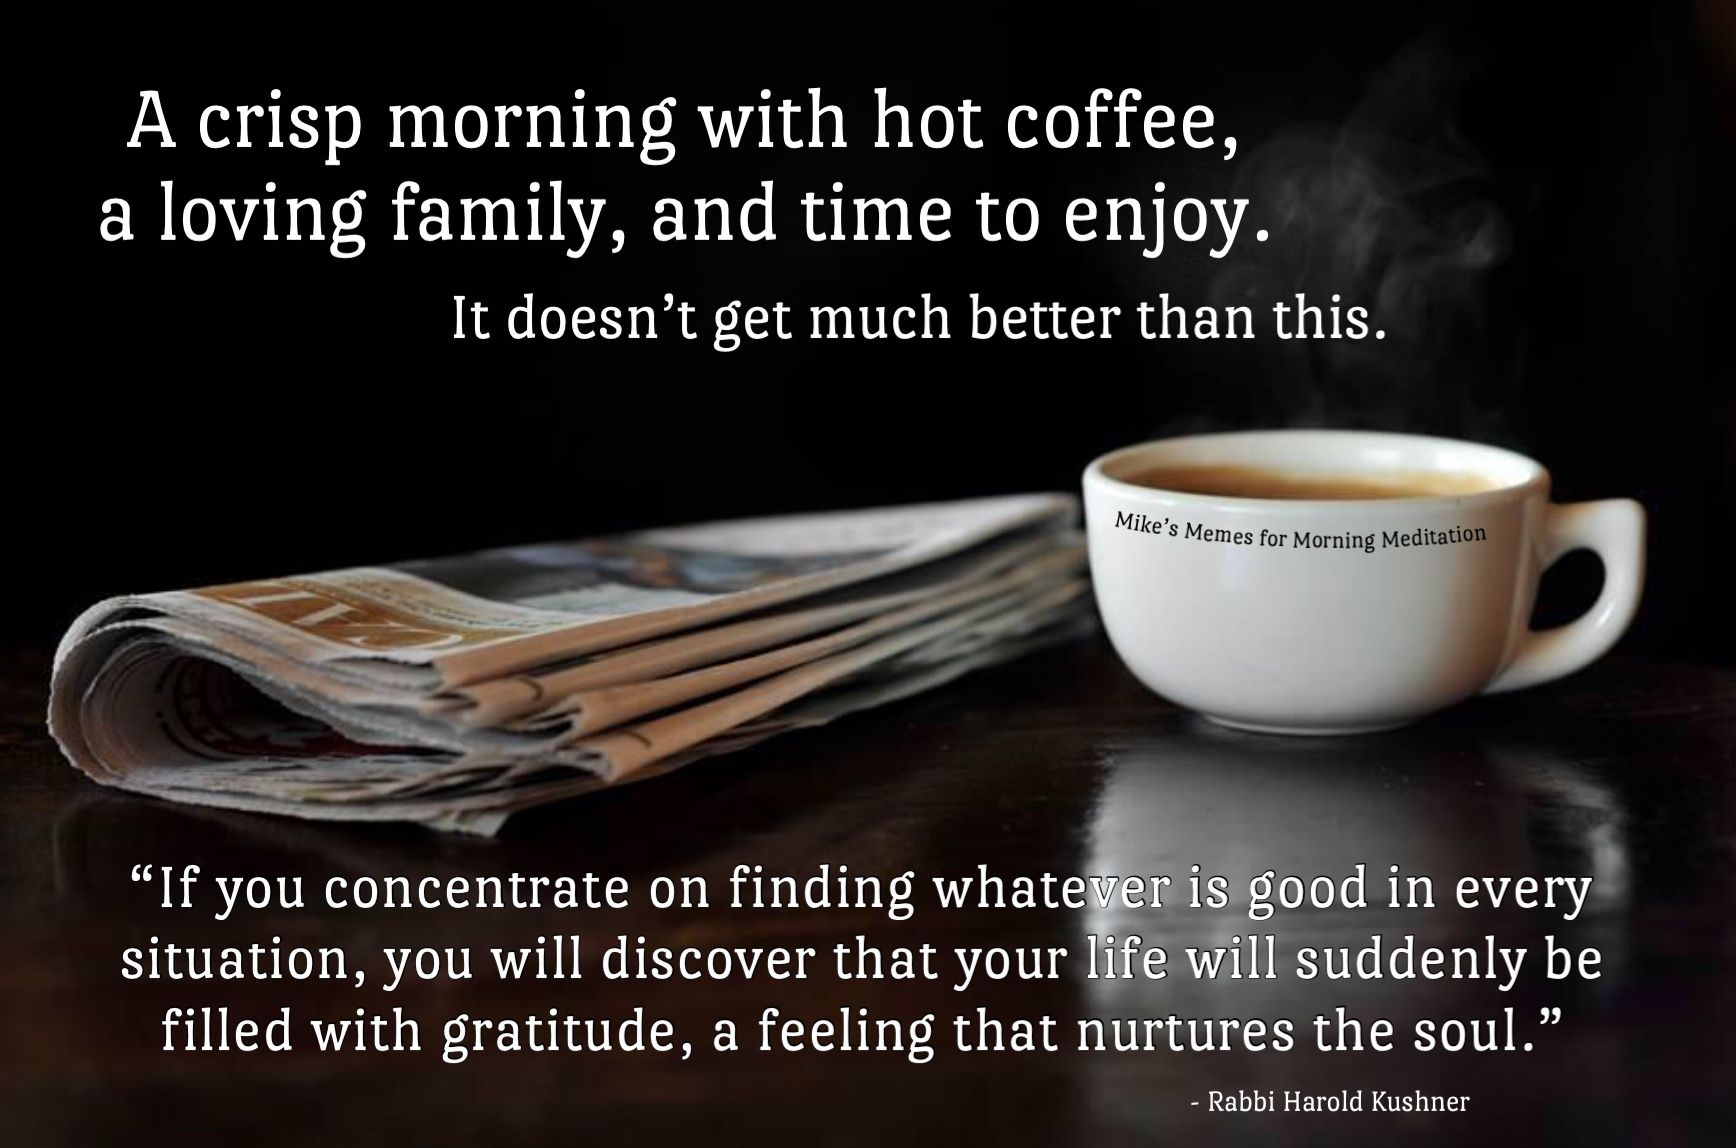 Pin about Morning meditation on Mike's Coffee Memes for